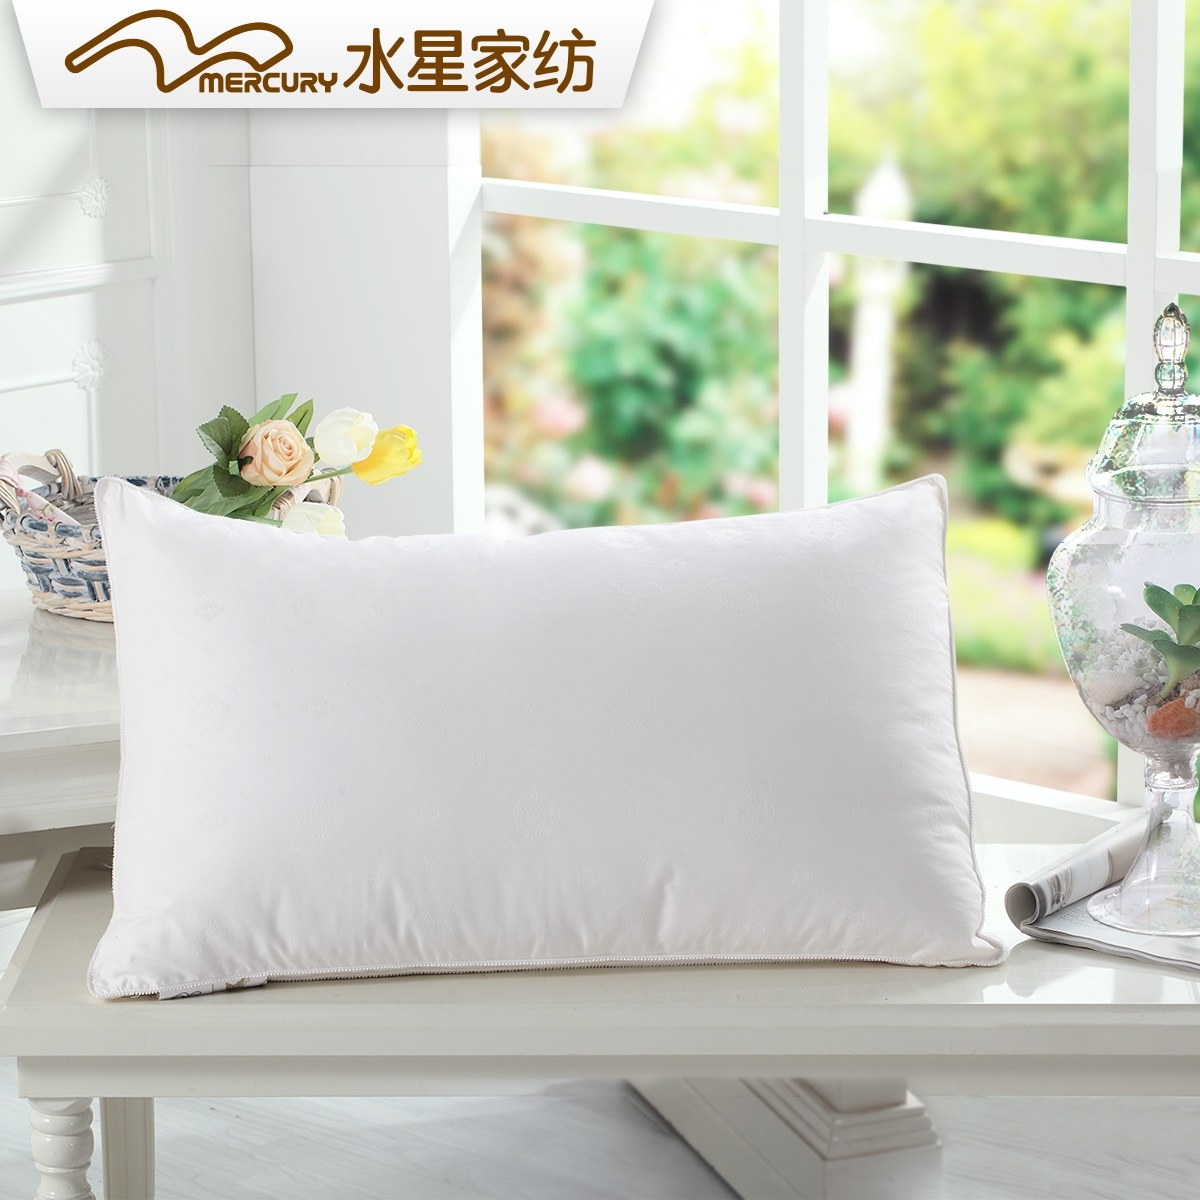 Mercury textile double stereo duck feather pillow cotton fabric pillow